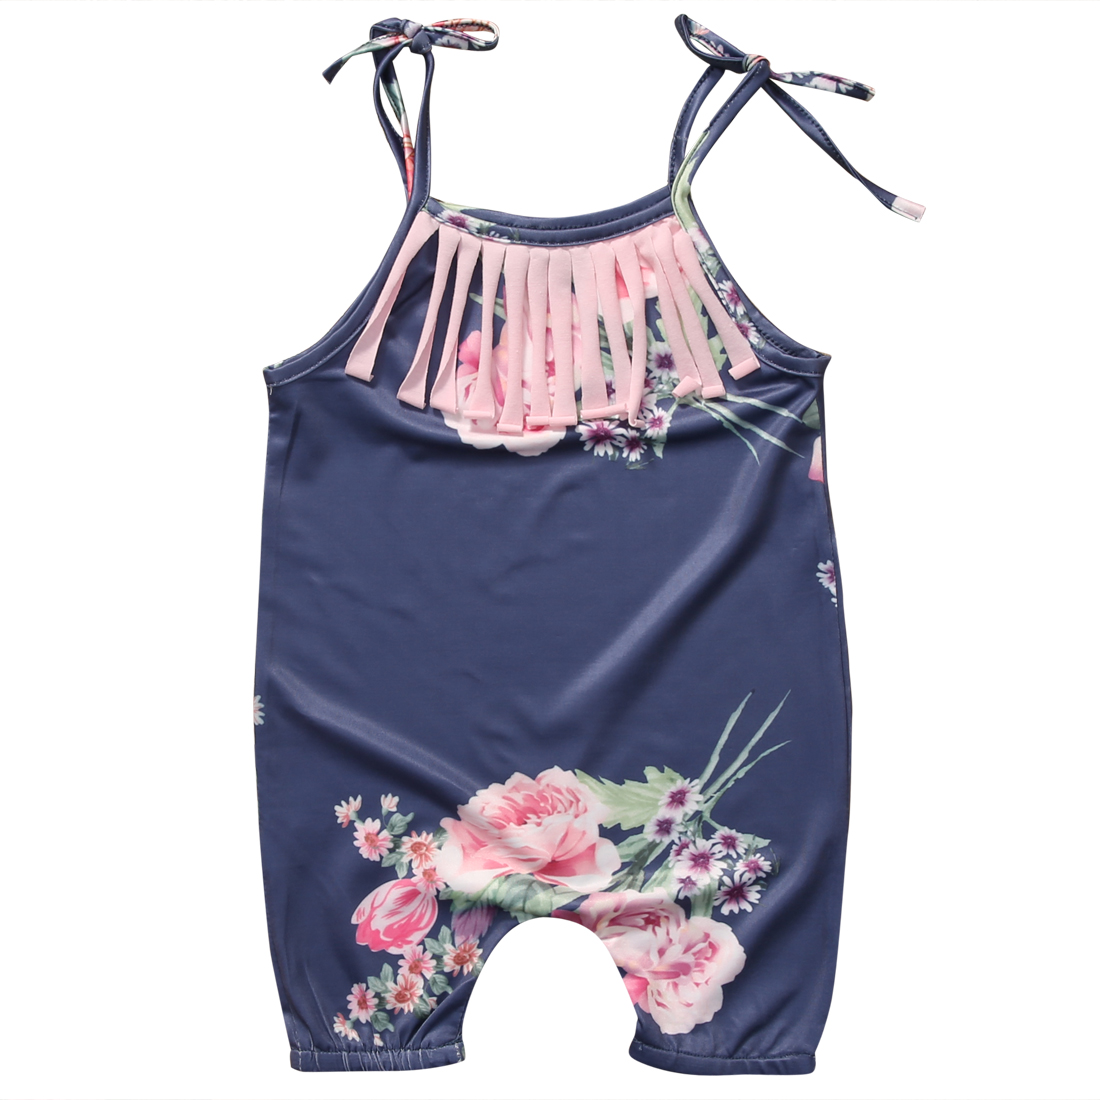 Hot Unisex Dropshipping New Arrival Baby Toddler Summer Boutique Baby Vintage Floral Tassel Romper Boy Clothes Costume Overalls